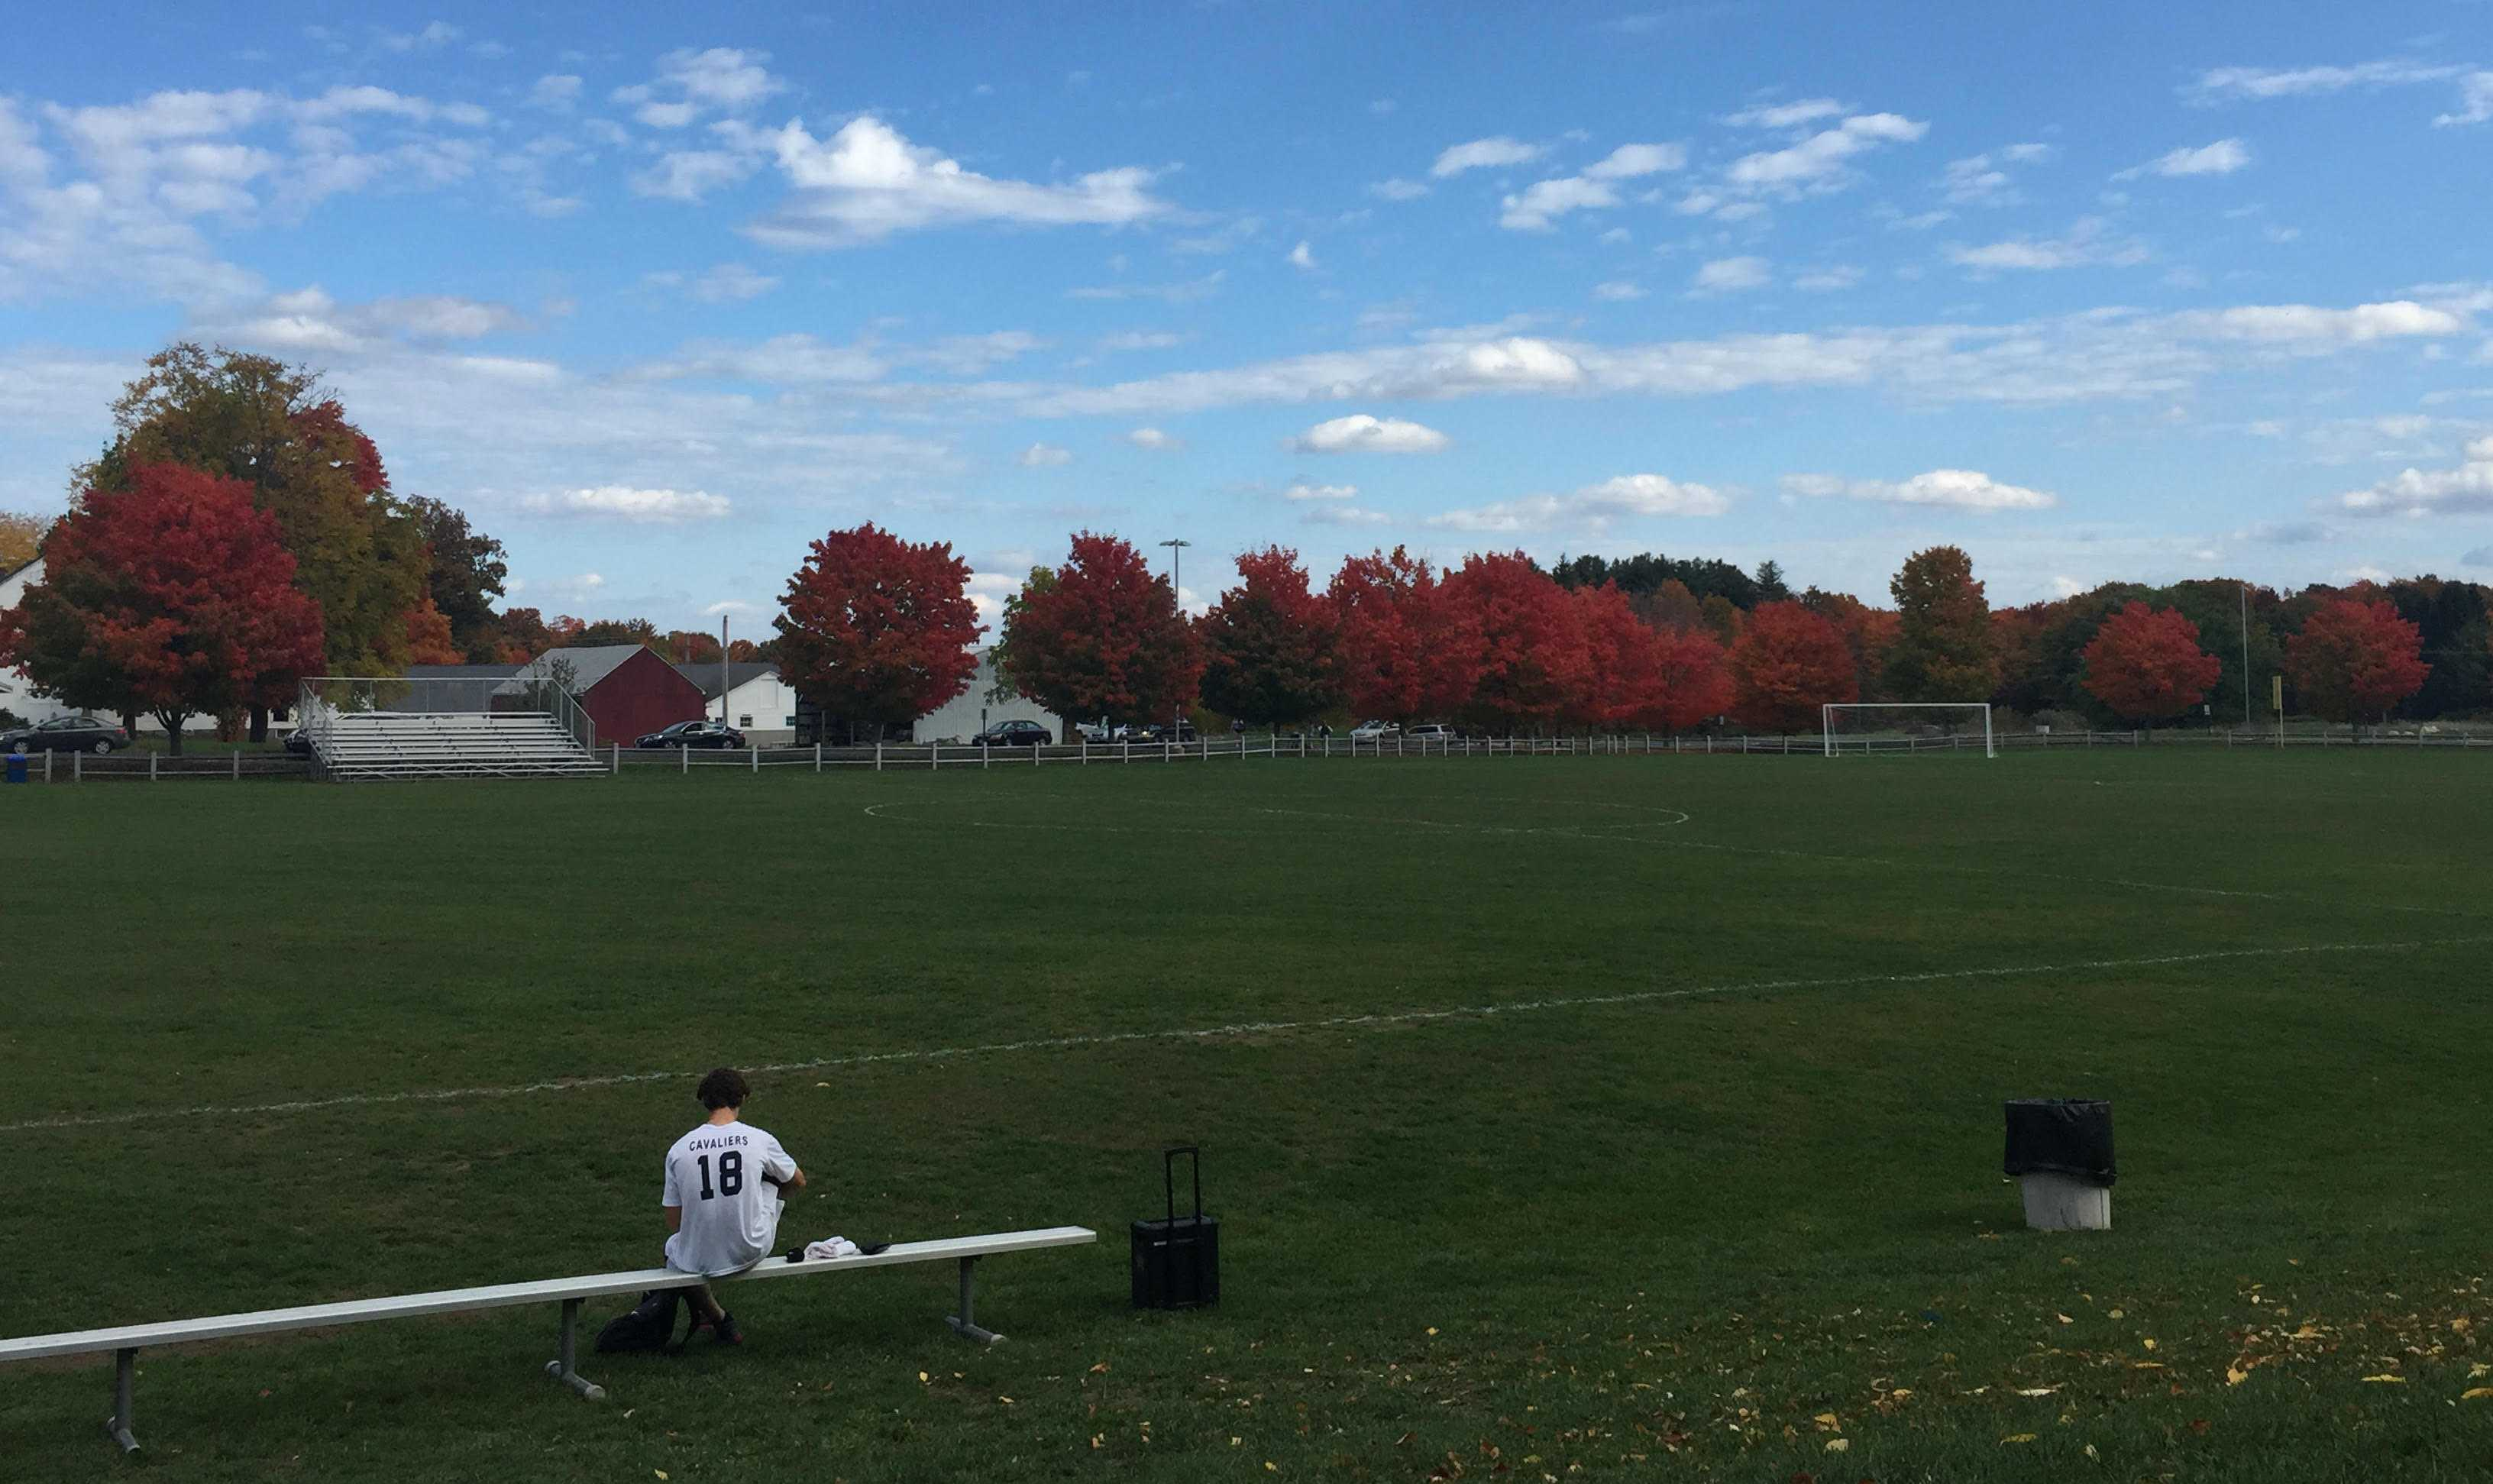 The Hollis Brookline soccer field after a fall afternoon game.